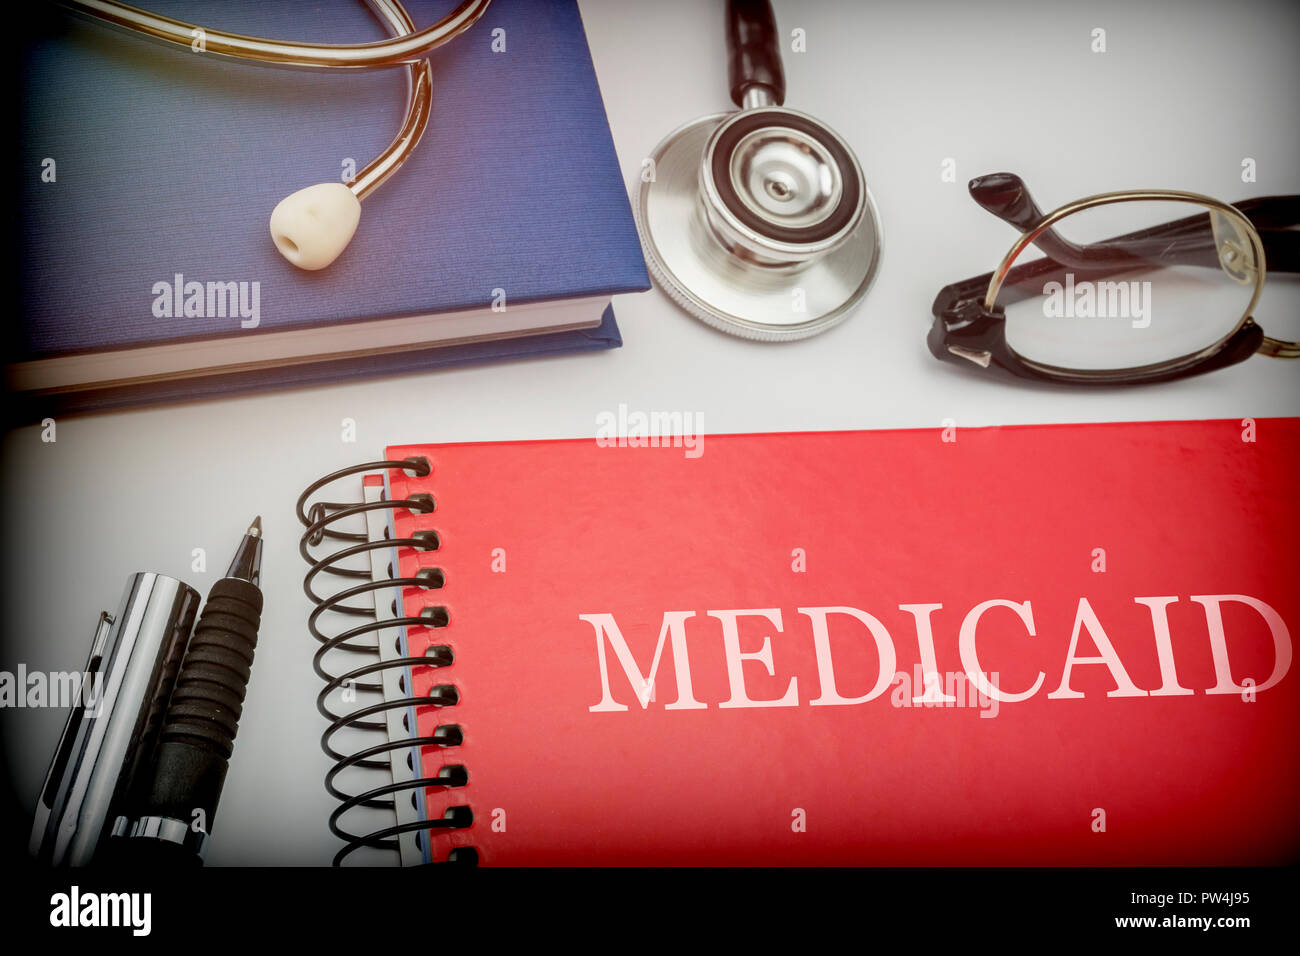 Titled red book medicaid along with medical equipment